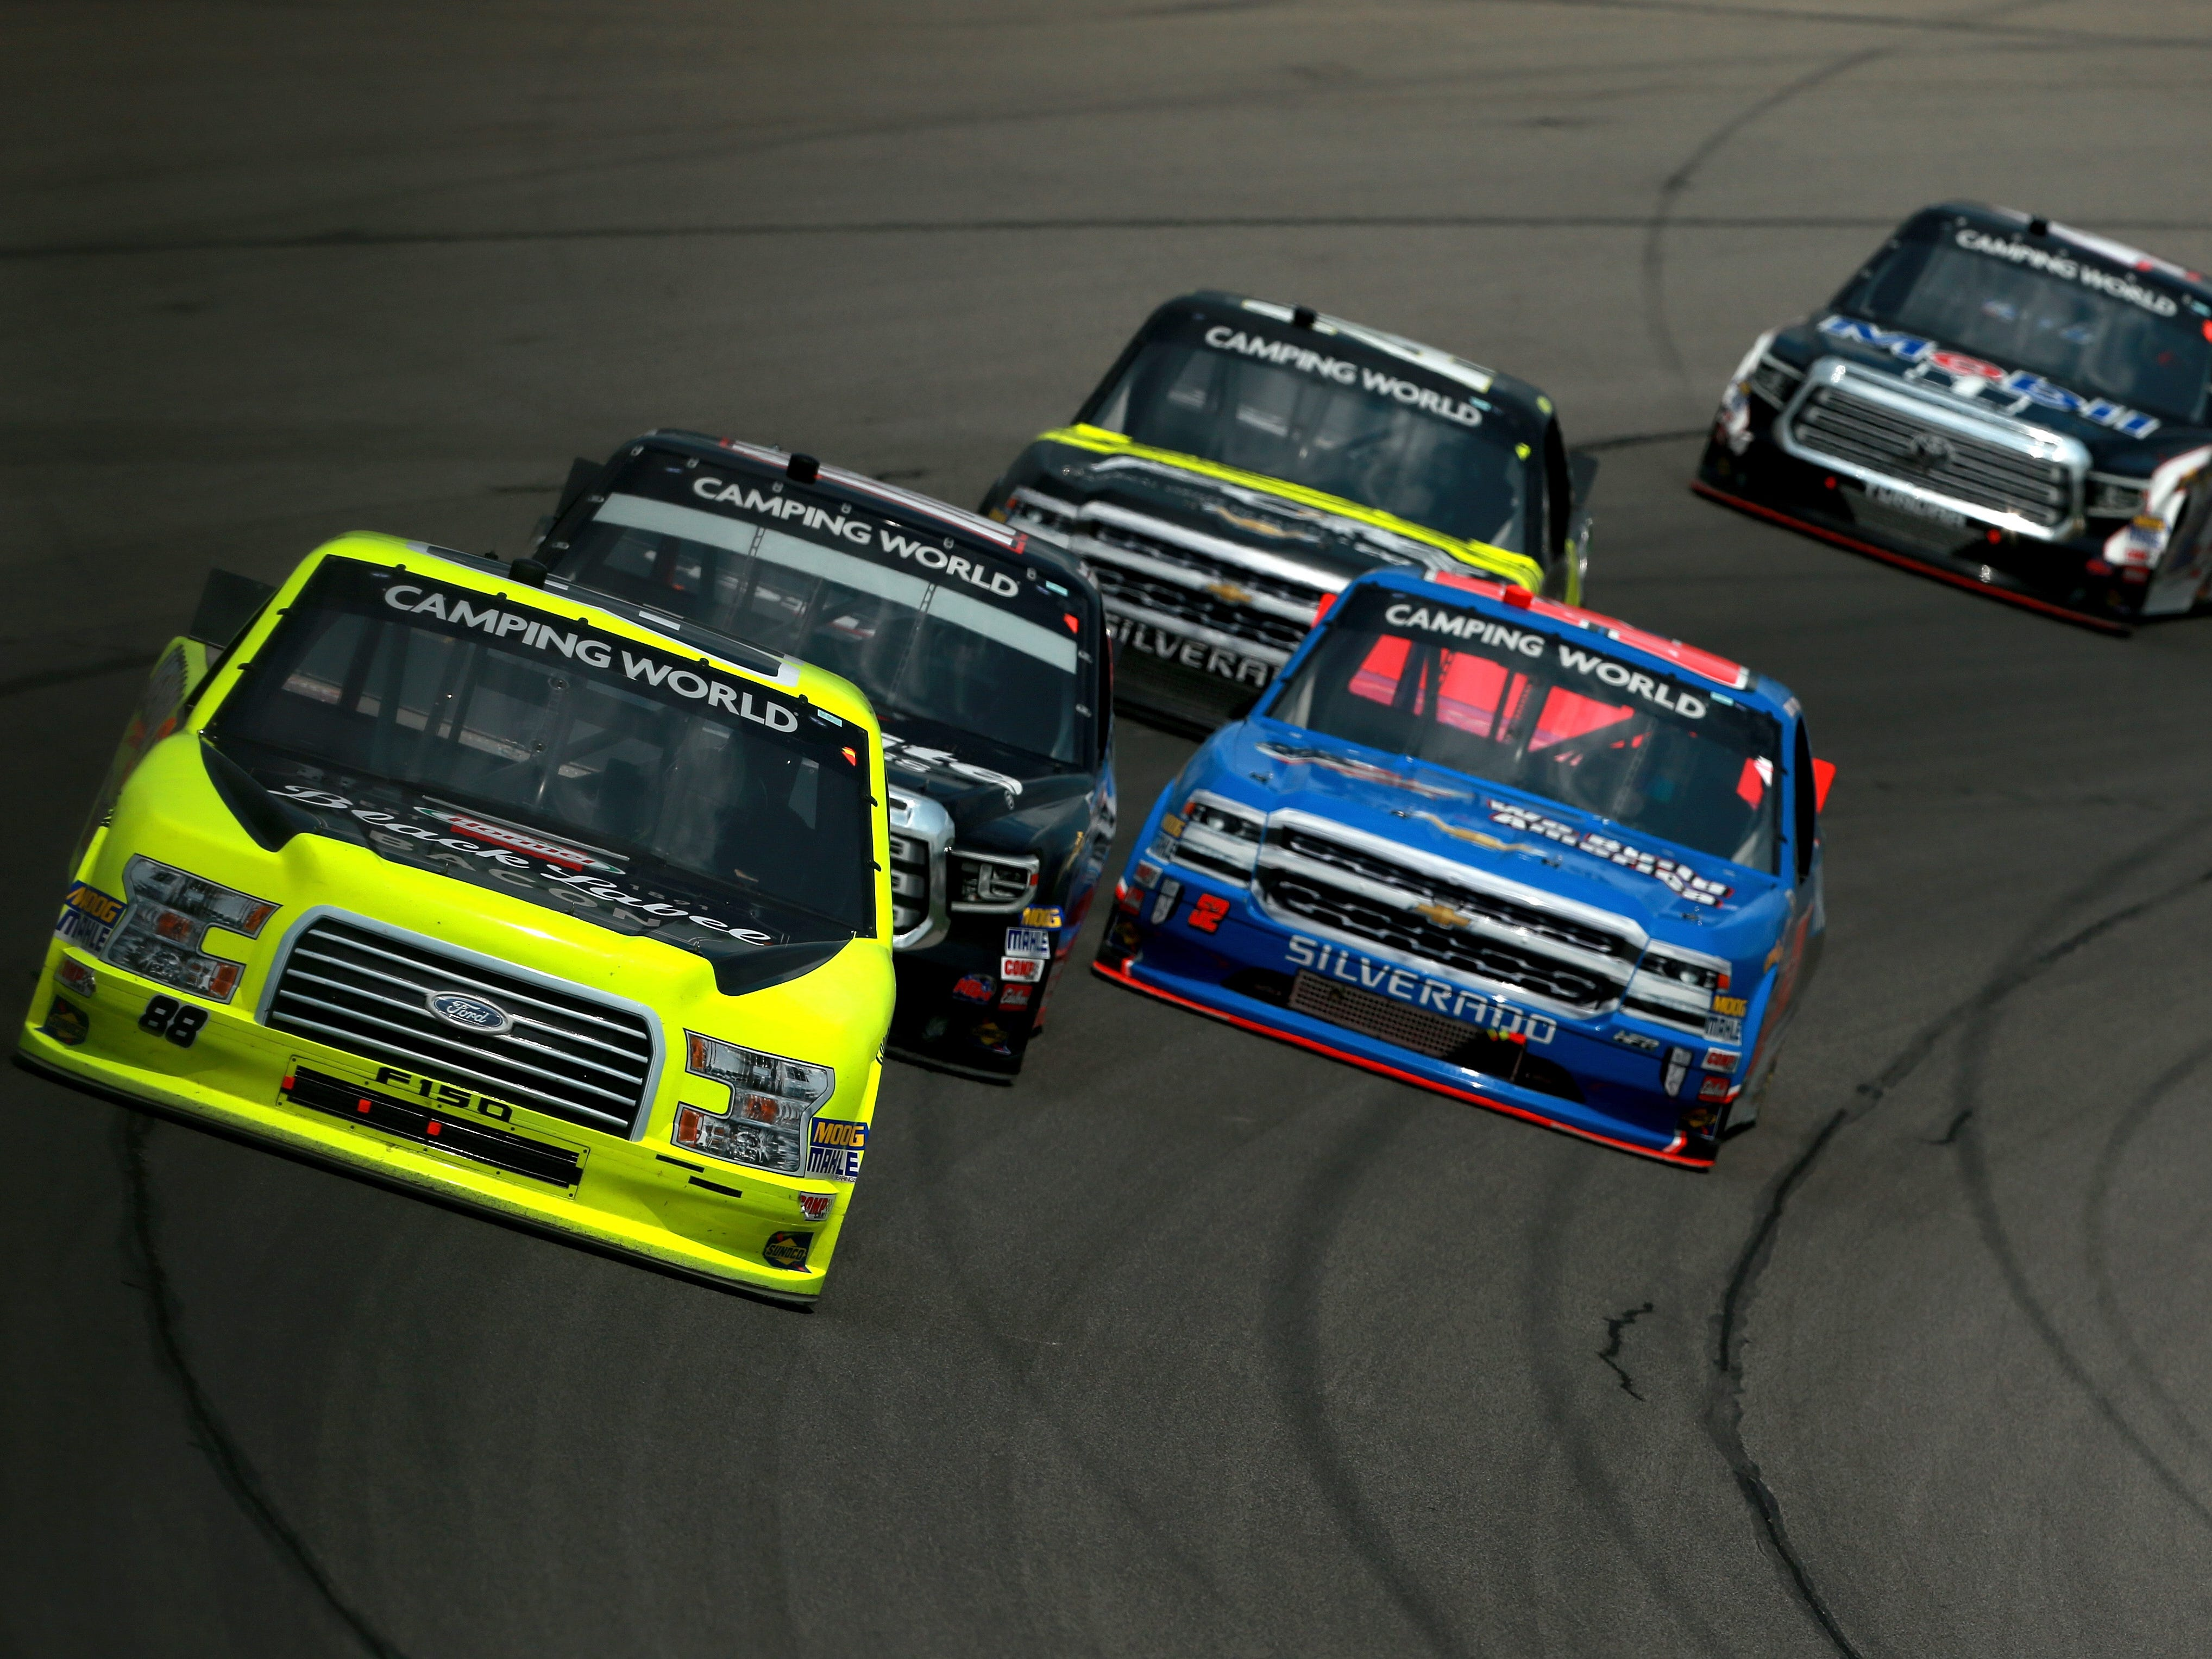 Matt Crafton, driver of the No. 88 Hormel/Menards Ford, leads a pack of trucks during the NASCAR Camping World Truck Series Corrigan Oil 200 at Michigan International Speedway on August 11, 2018 in Brooklyn.